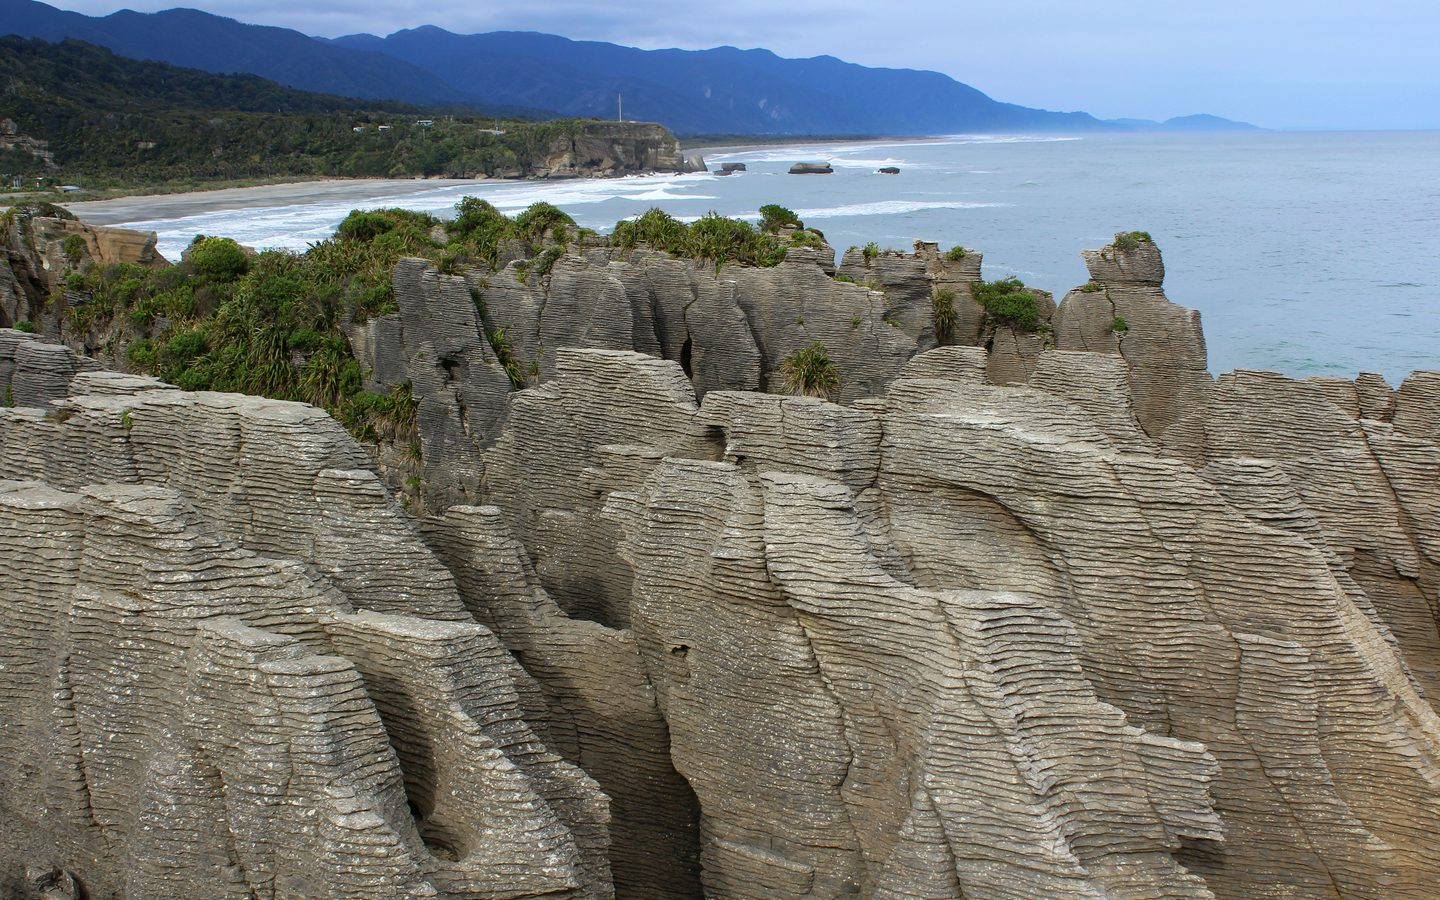 View of pancake rocks and up the coast behind